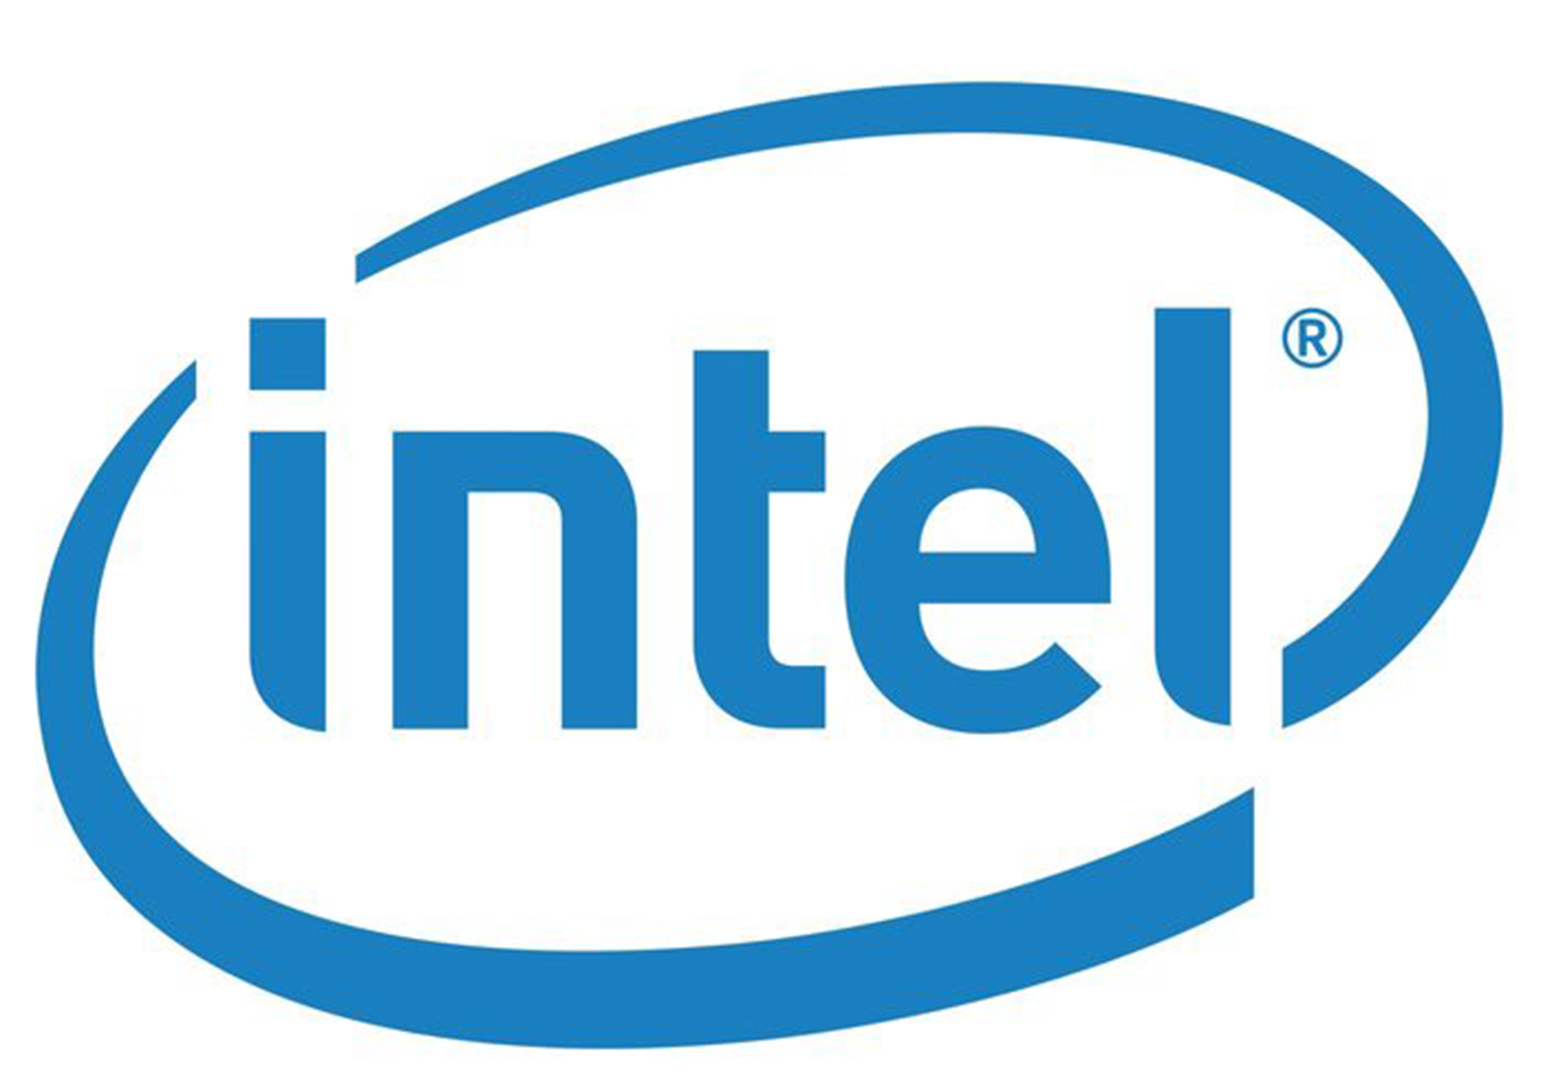 RIDL is yet another security vulnerability affecting only Intel's CPUs, AMD CPUs safe from it